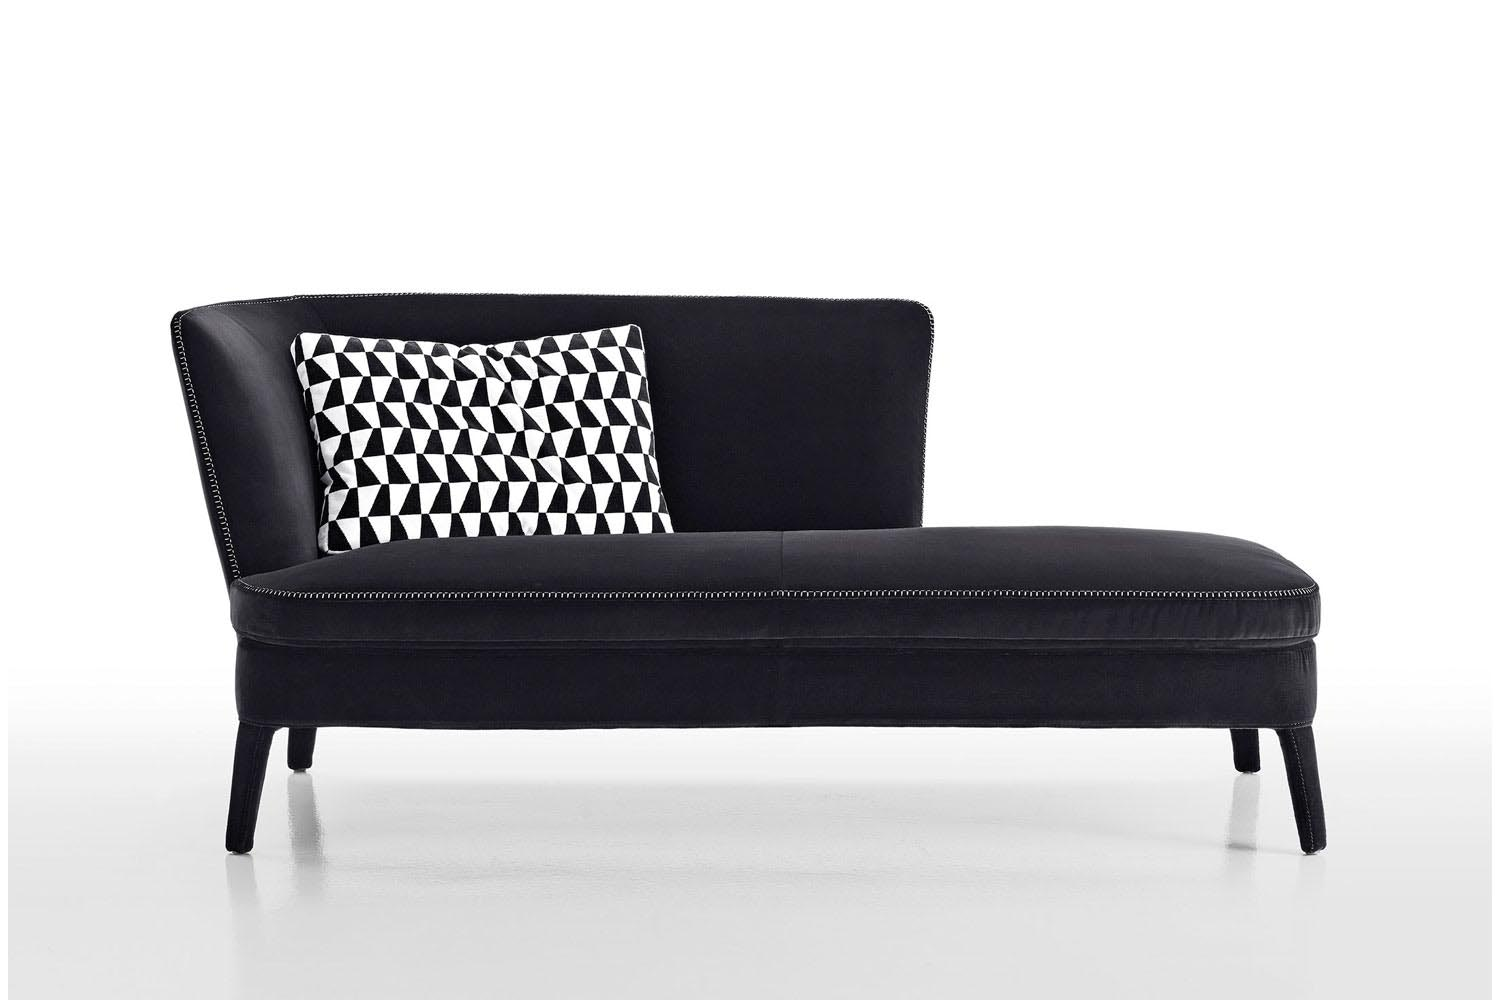 Febo '15 Chaise Longue by Antonio Citterio for Maxalto